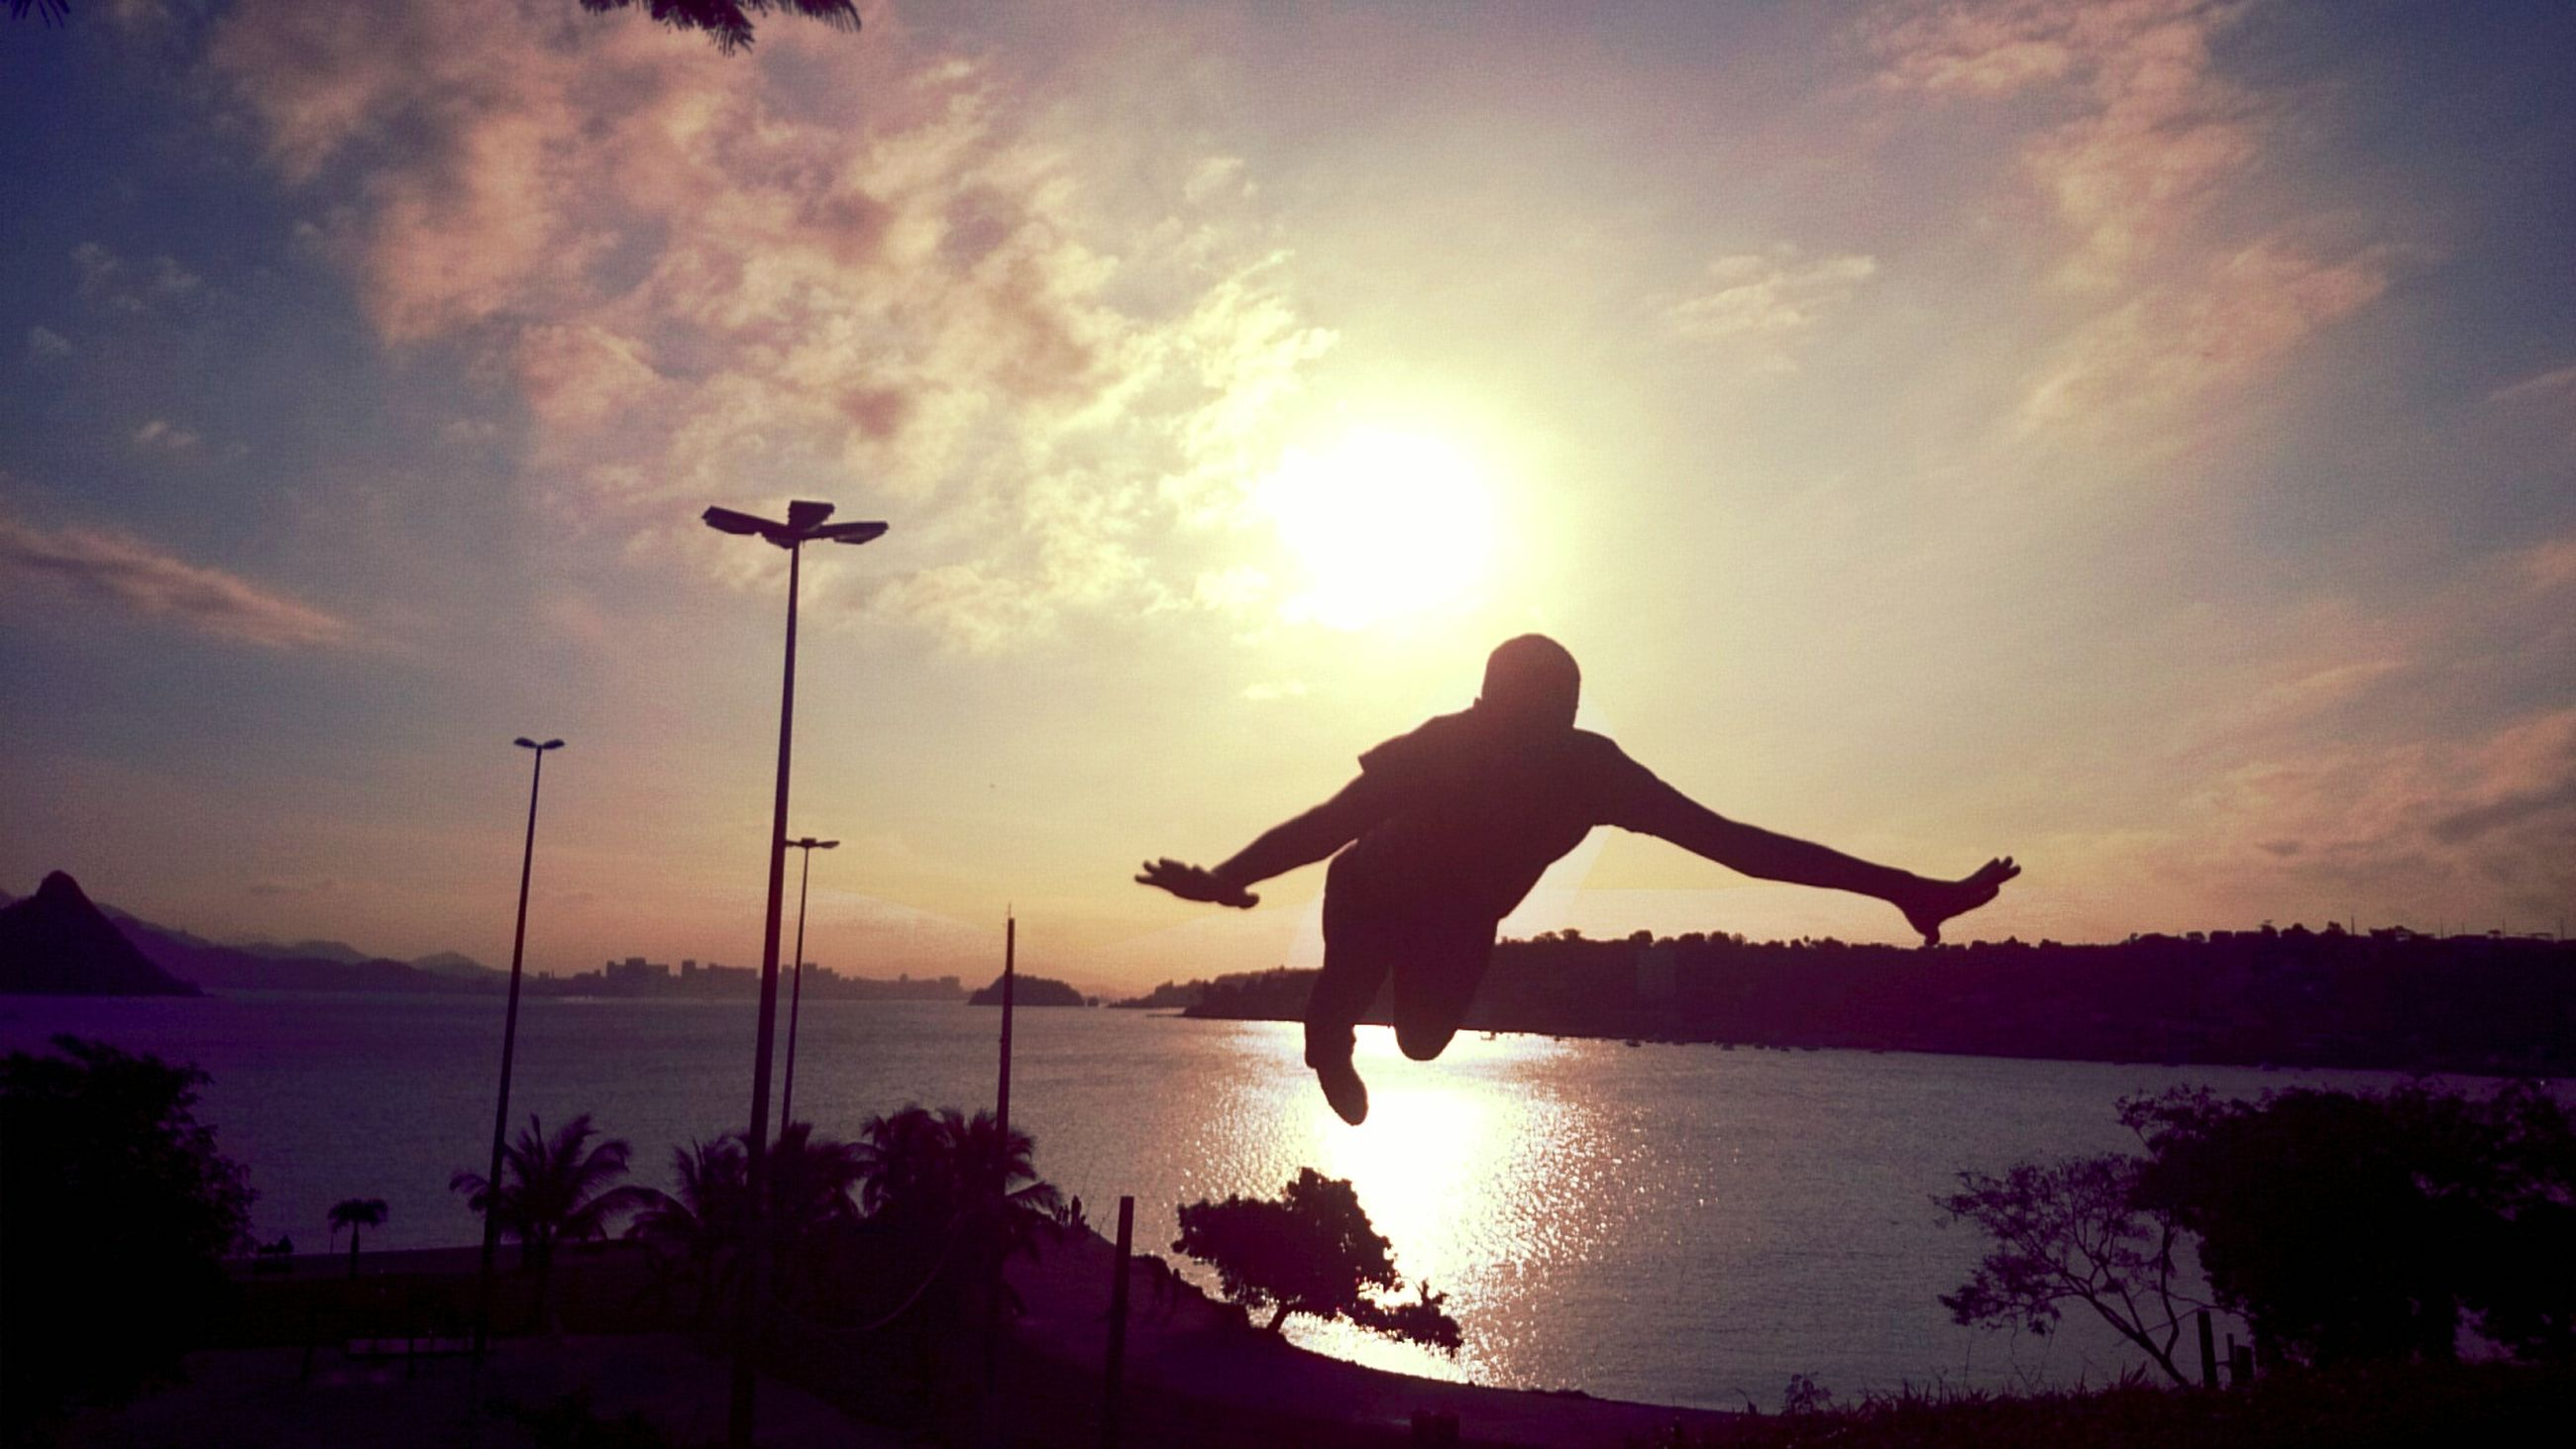 silhouette, sunset, sky, one animal, one person, animal themes, water, full length, bird, sun, cloud - sky, cloud, sea, nature, beauty in nature, animals in the wild, spread wings, mid-air, sunlight, wildlife